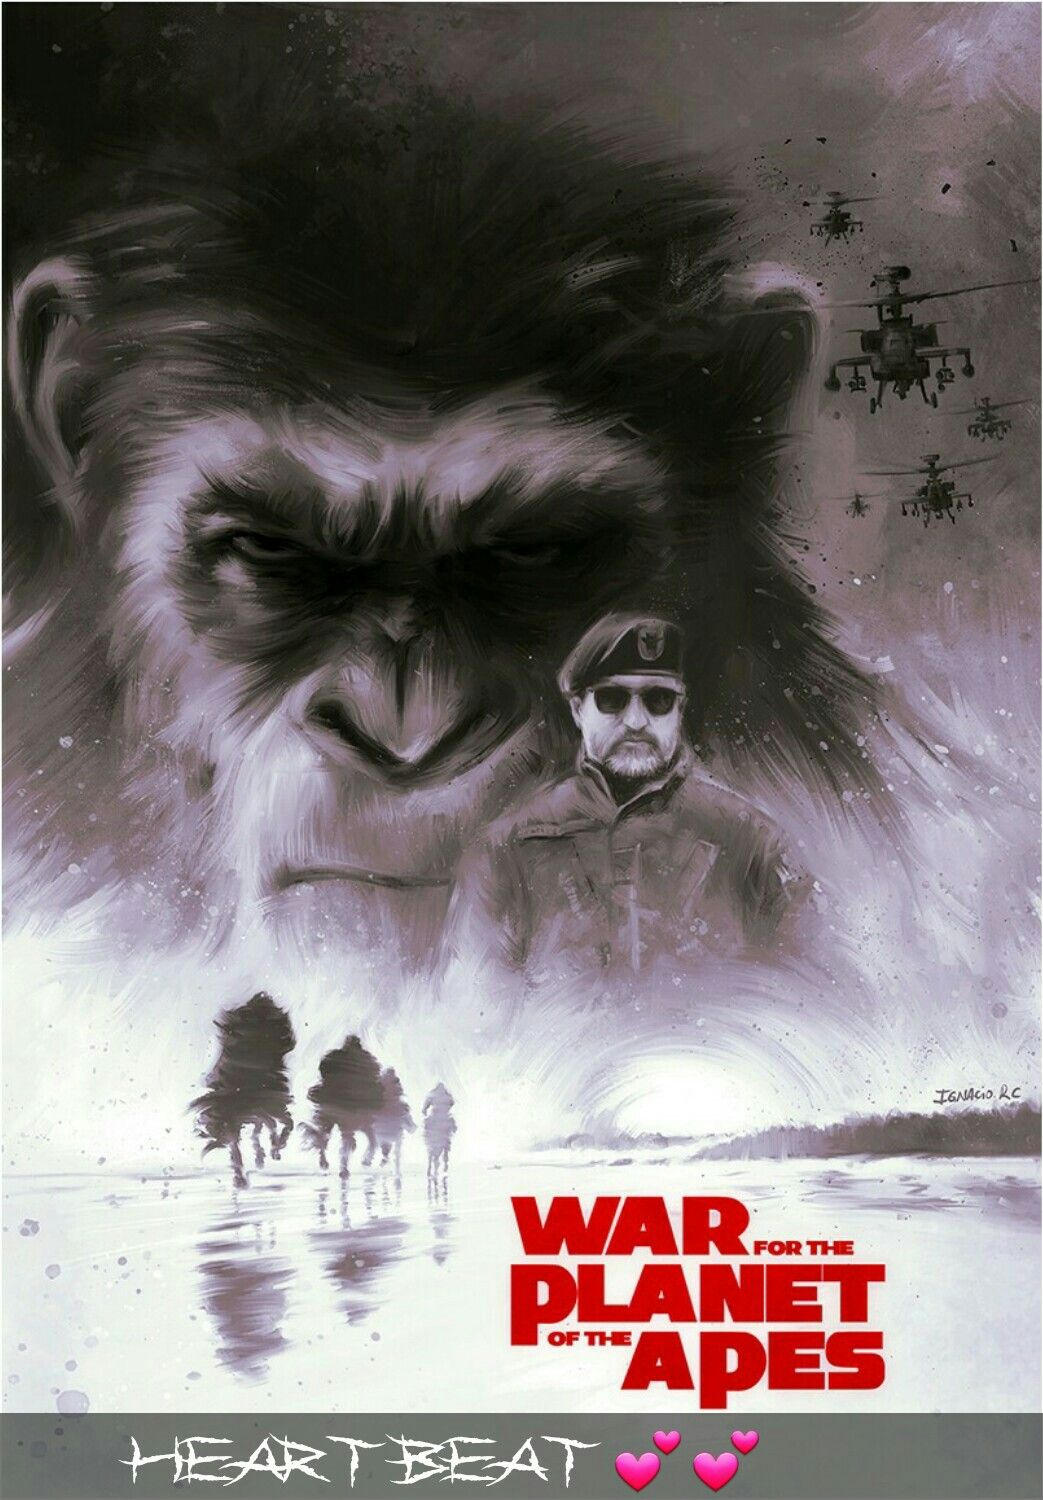 MOVIES. (With images) of the apes, Alternative